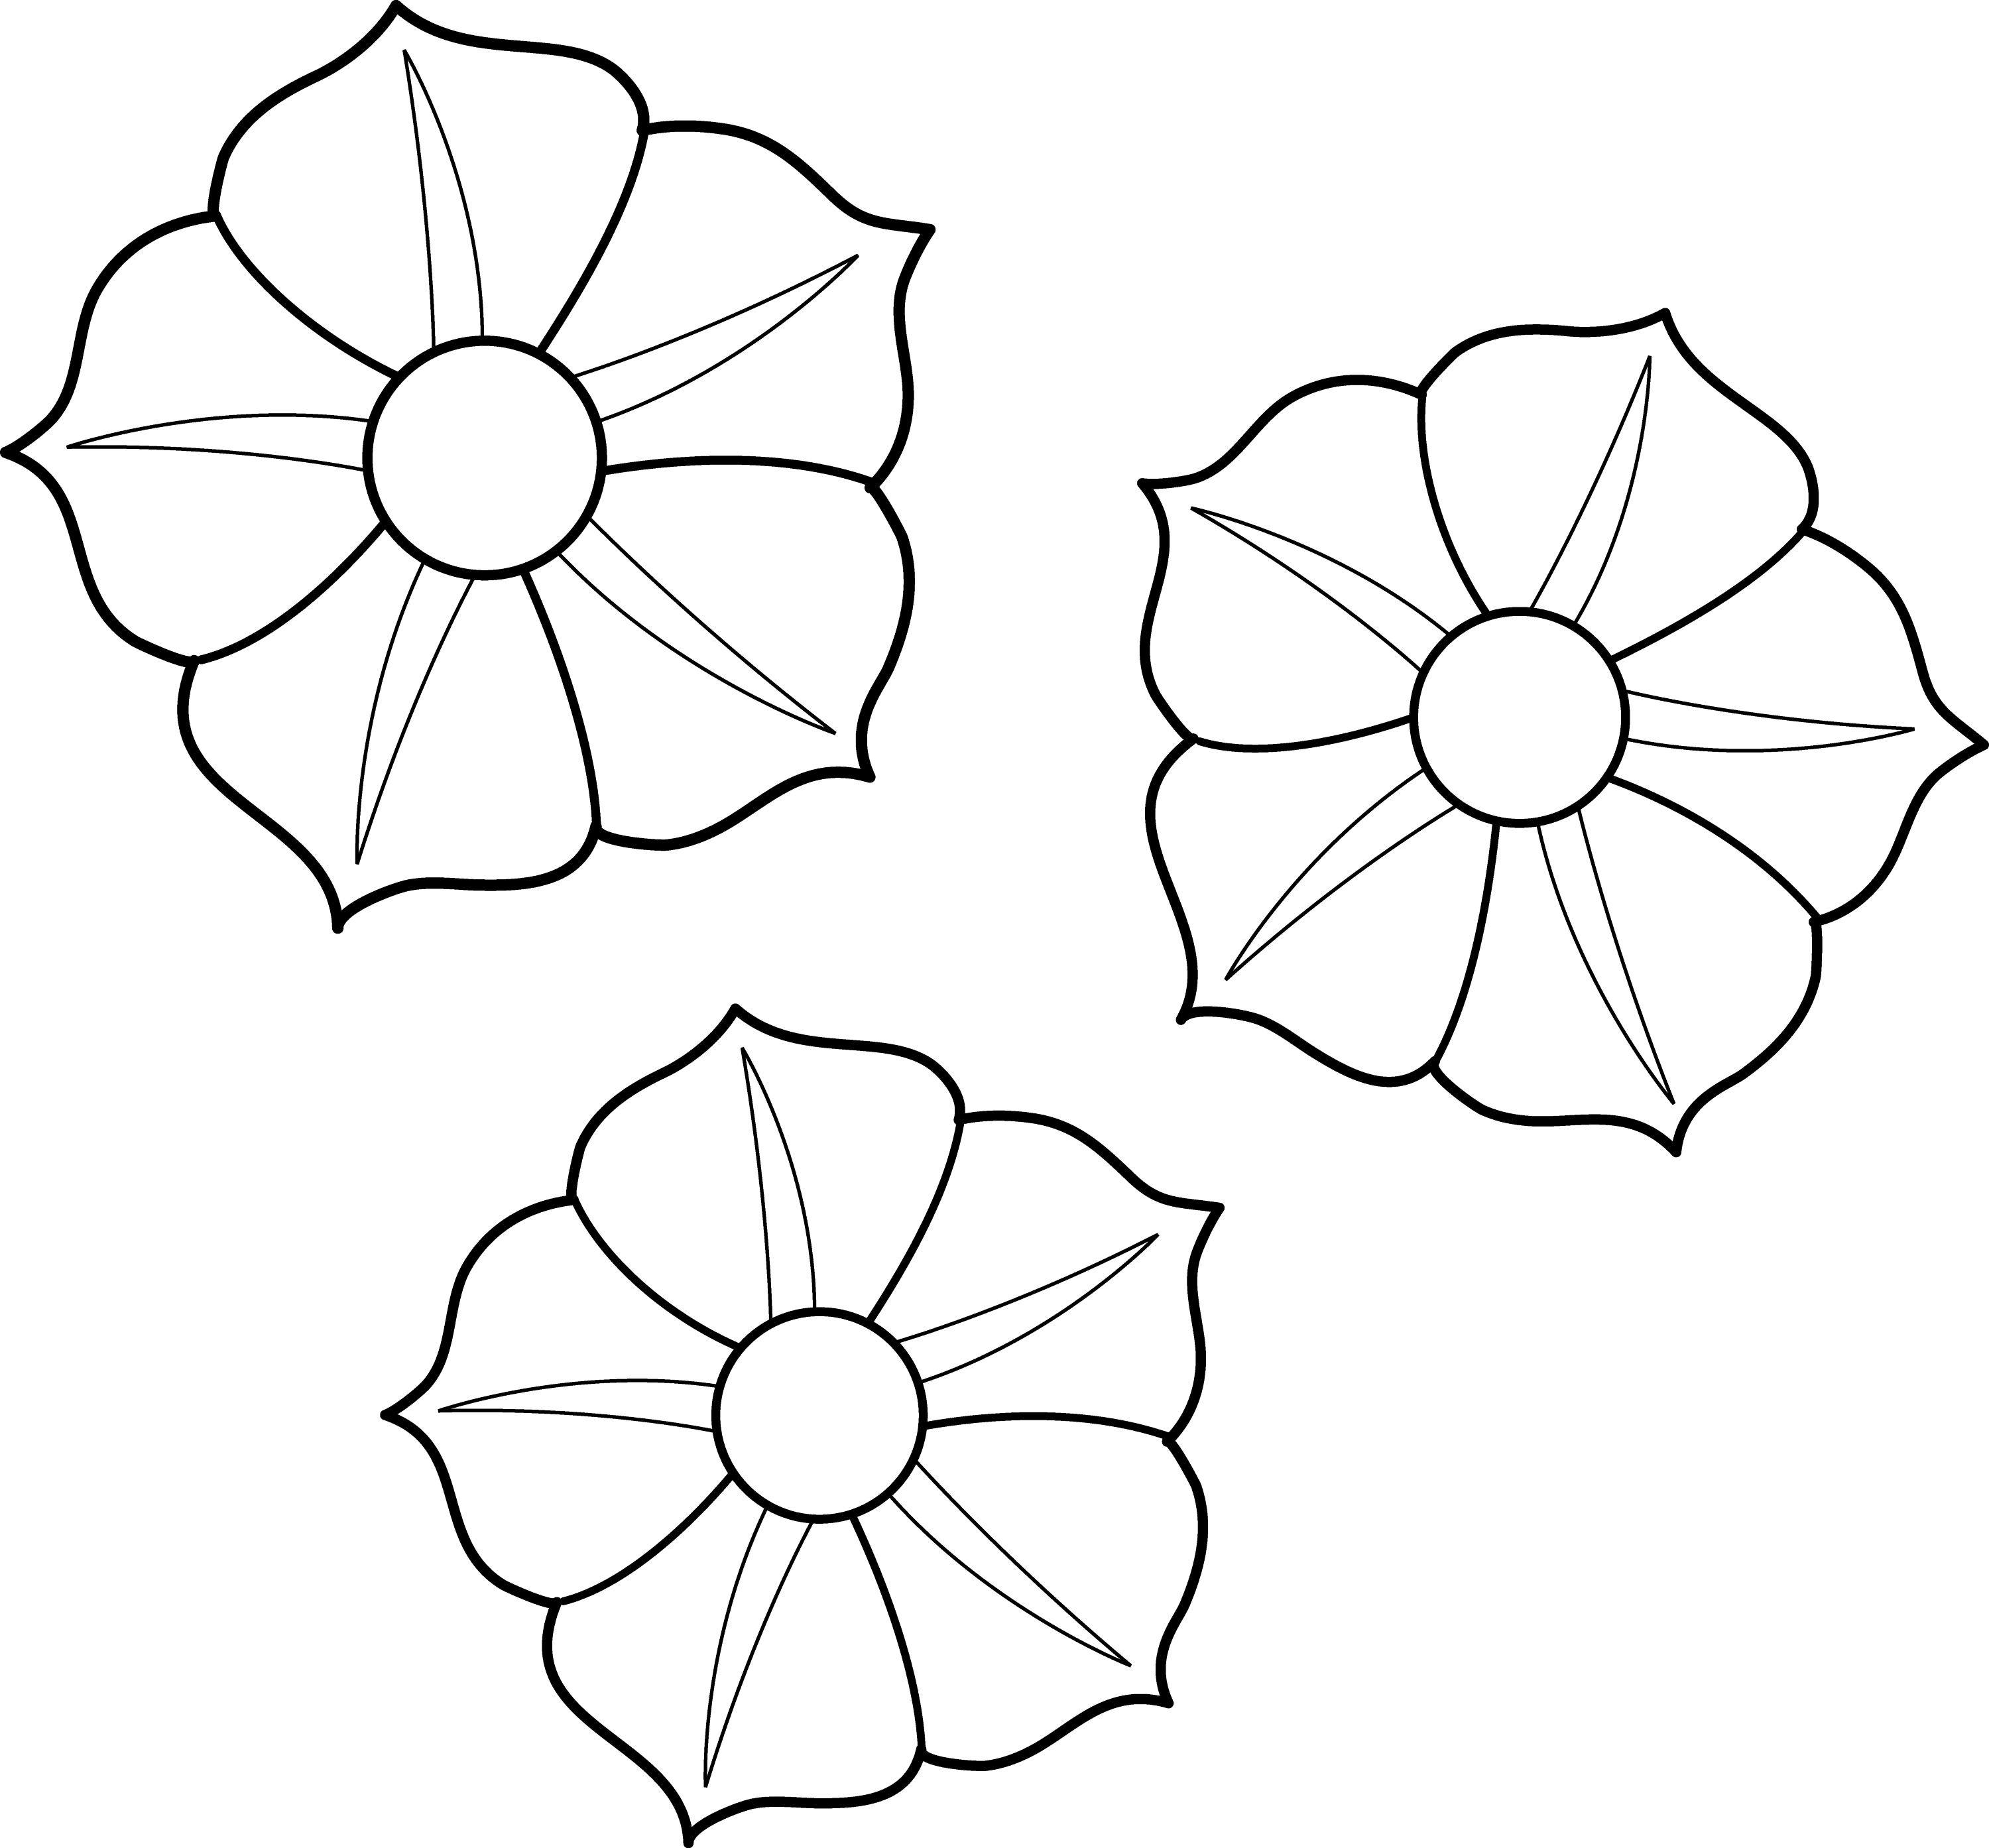 coloring flower png coloring clipart flower coloring flower transparent free png flower coloring